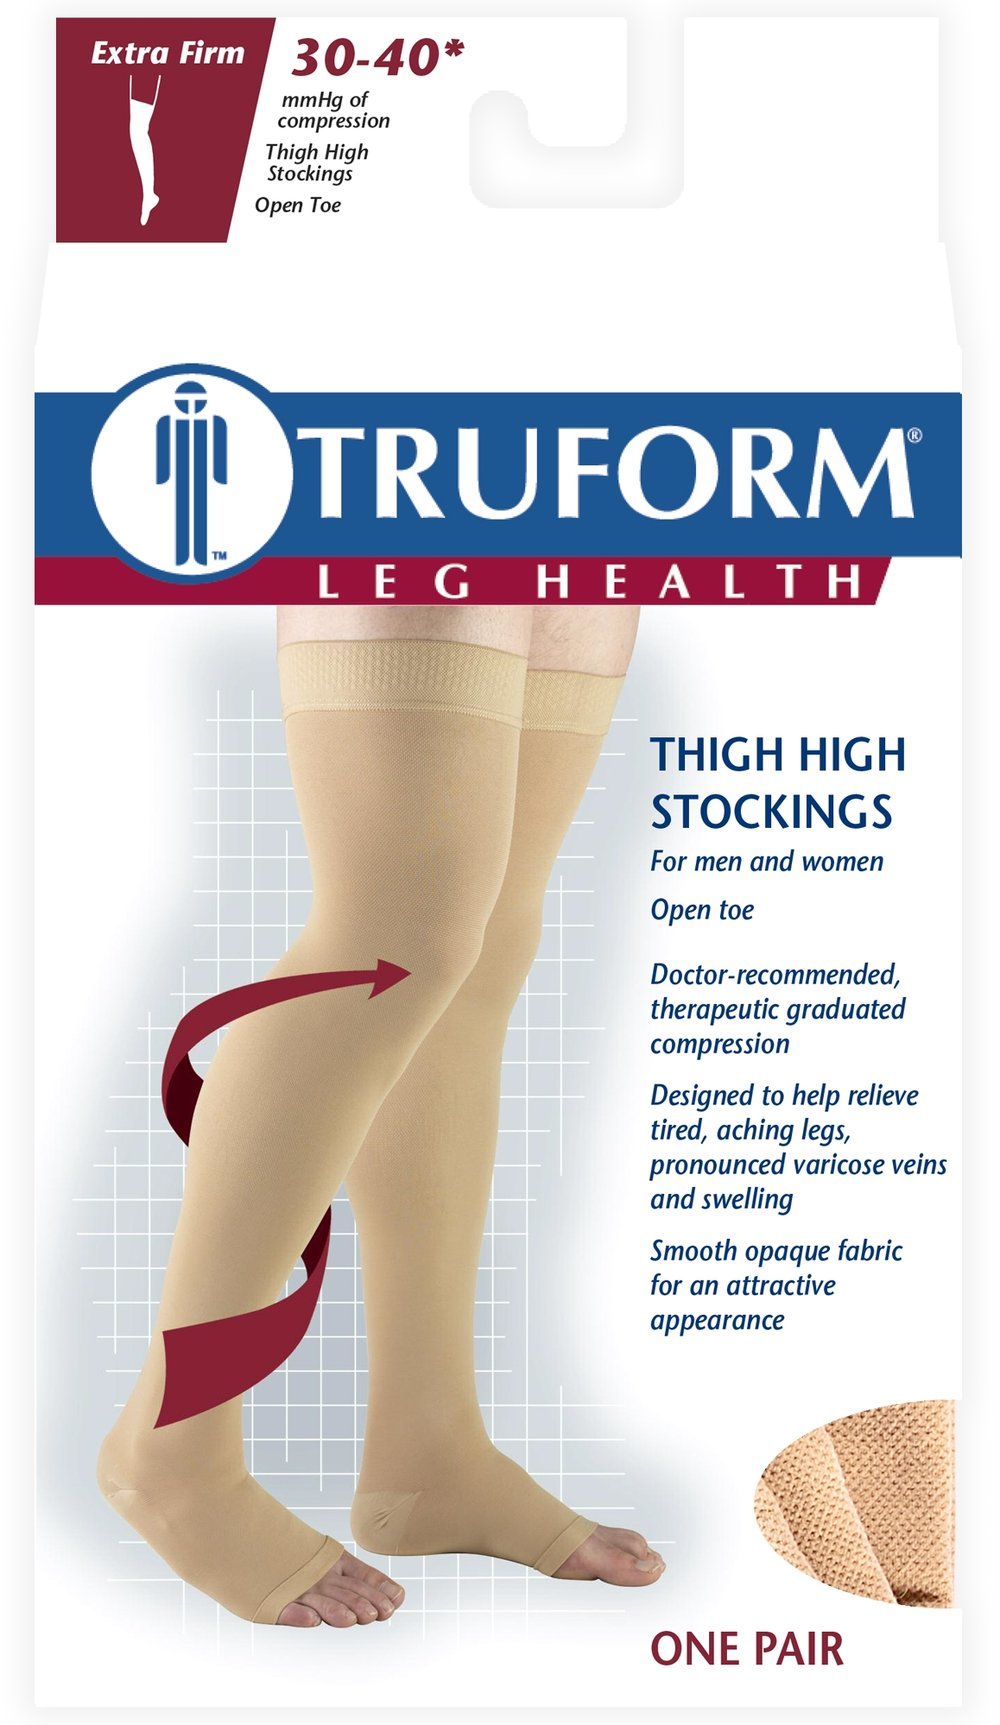 0848 / THIGH HIGH, SILICONE DOT TOP, OPEN TOE / 30-40 MMHG PACKAGING IMAGE